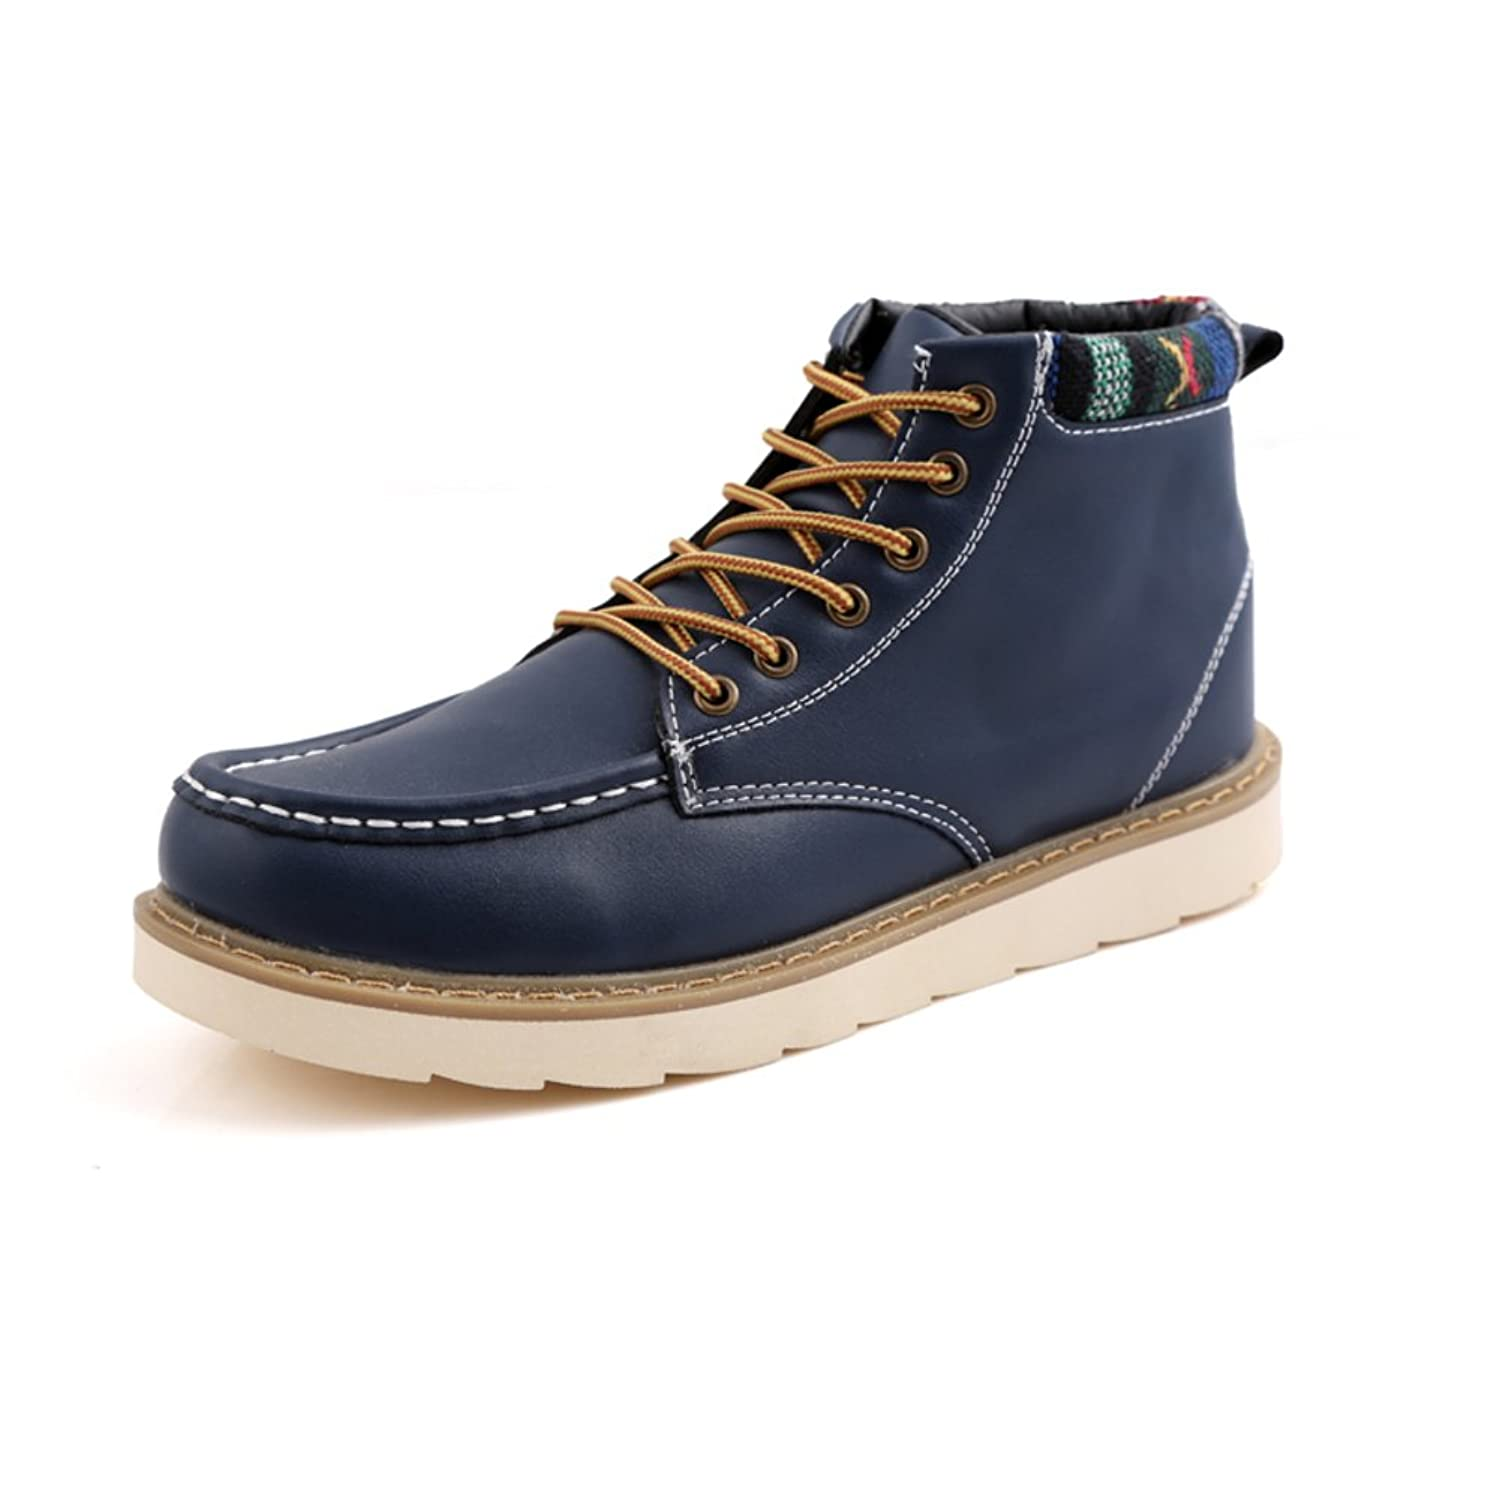 fashion Martin boots/Men of England Chelsea boots/Current high help shoes/ desert tooling shoes/ lovers shoes